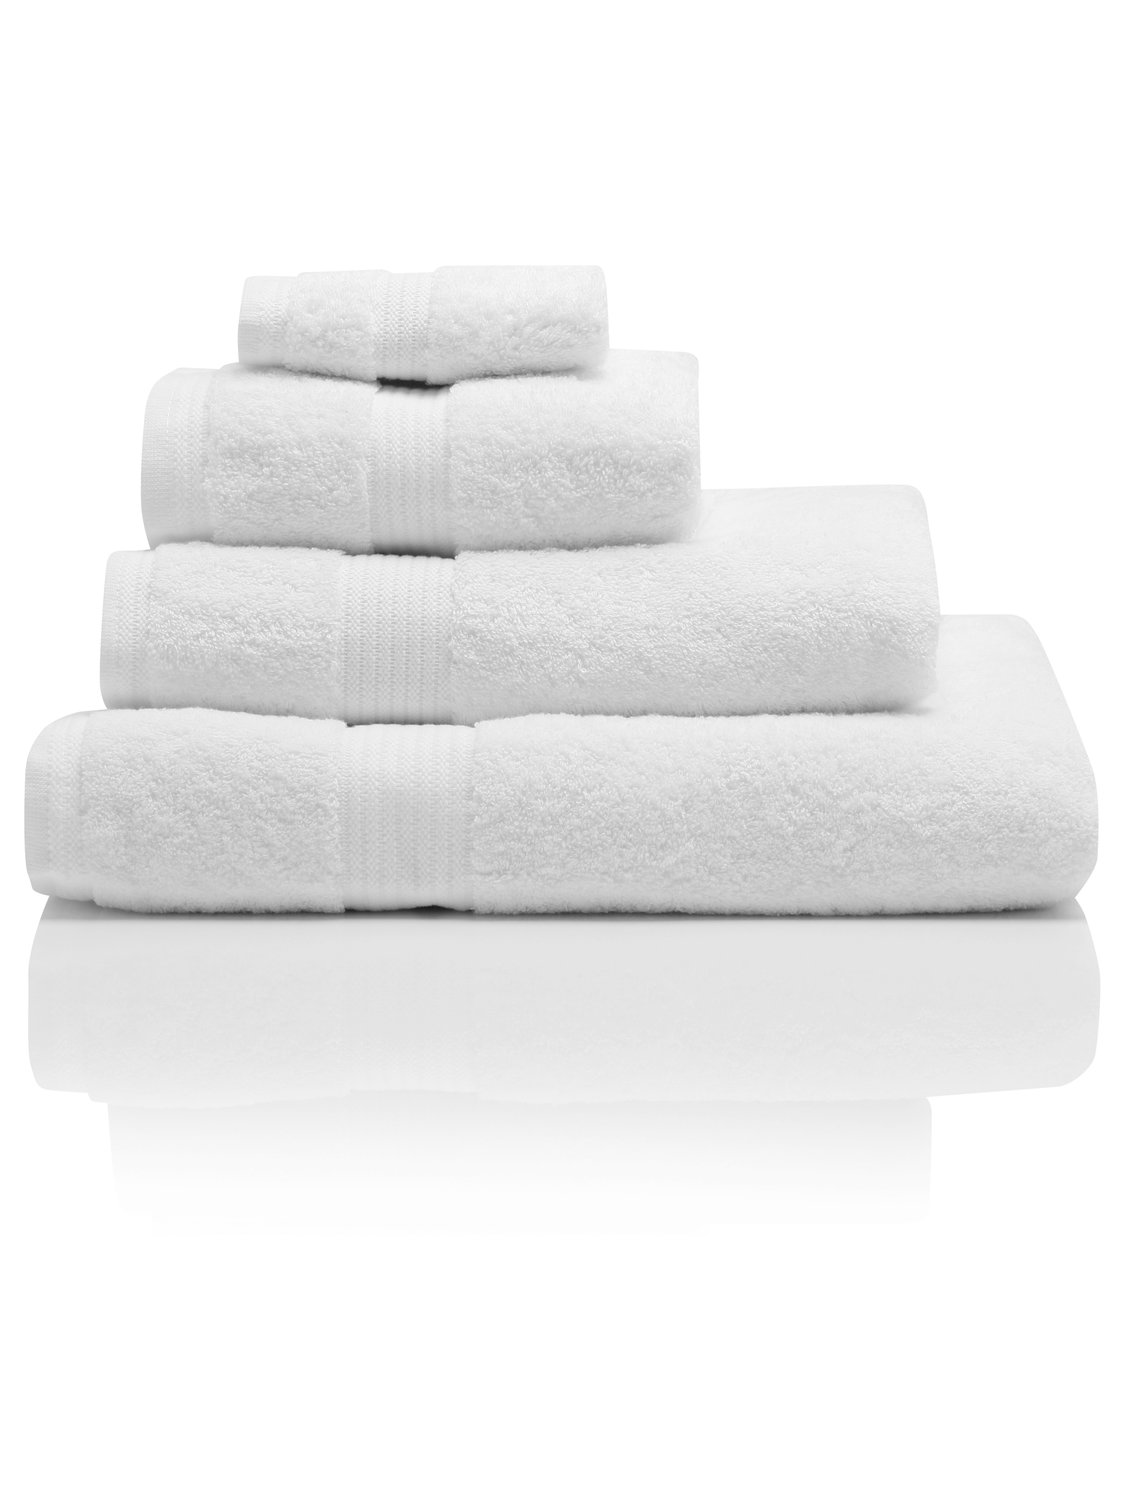 100% combed cotton 580gsm luxury soft and absorbent bath towel  - white